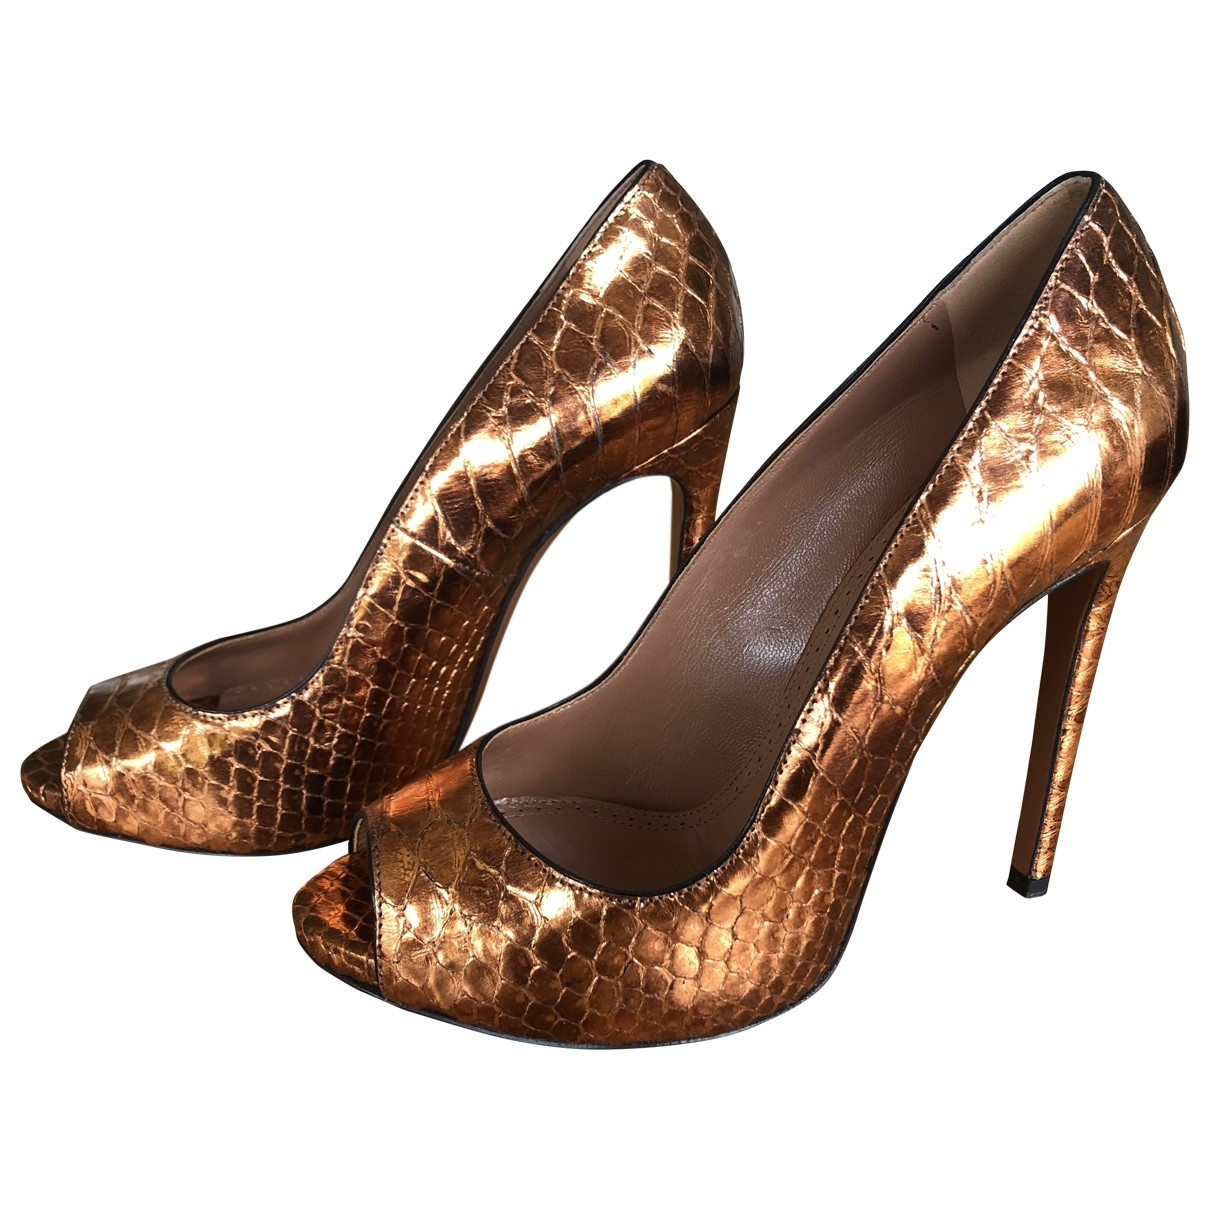 Alaia \N Pumps in  Gold Python